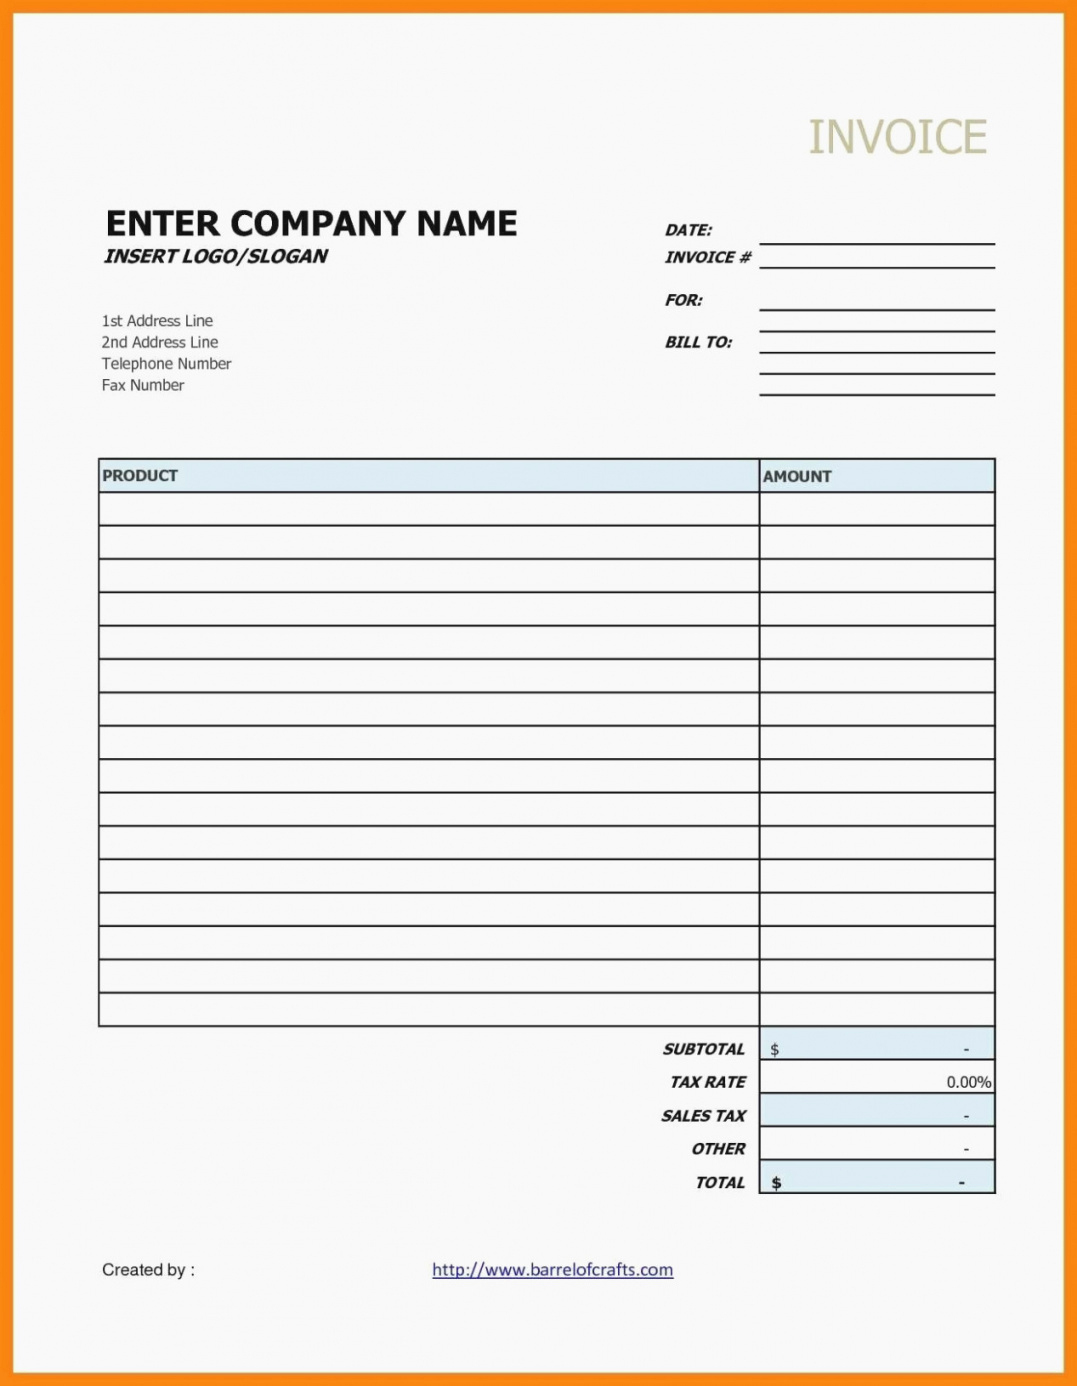 Invoice Template for Google Docs Elegant Contractor Invoice Template Google Docs